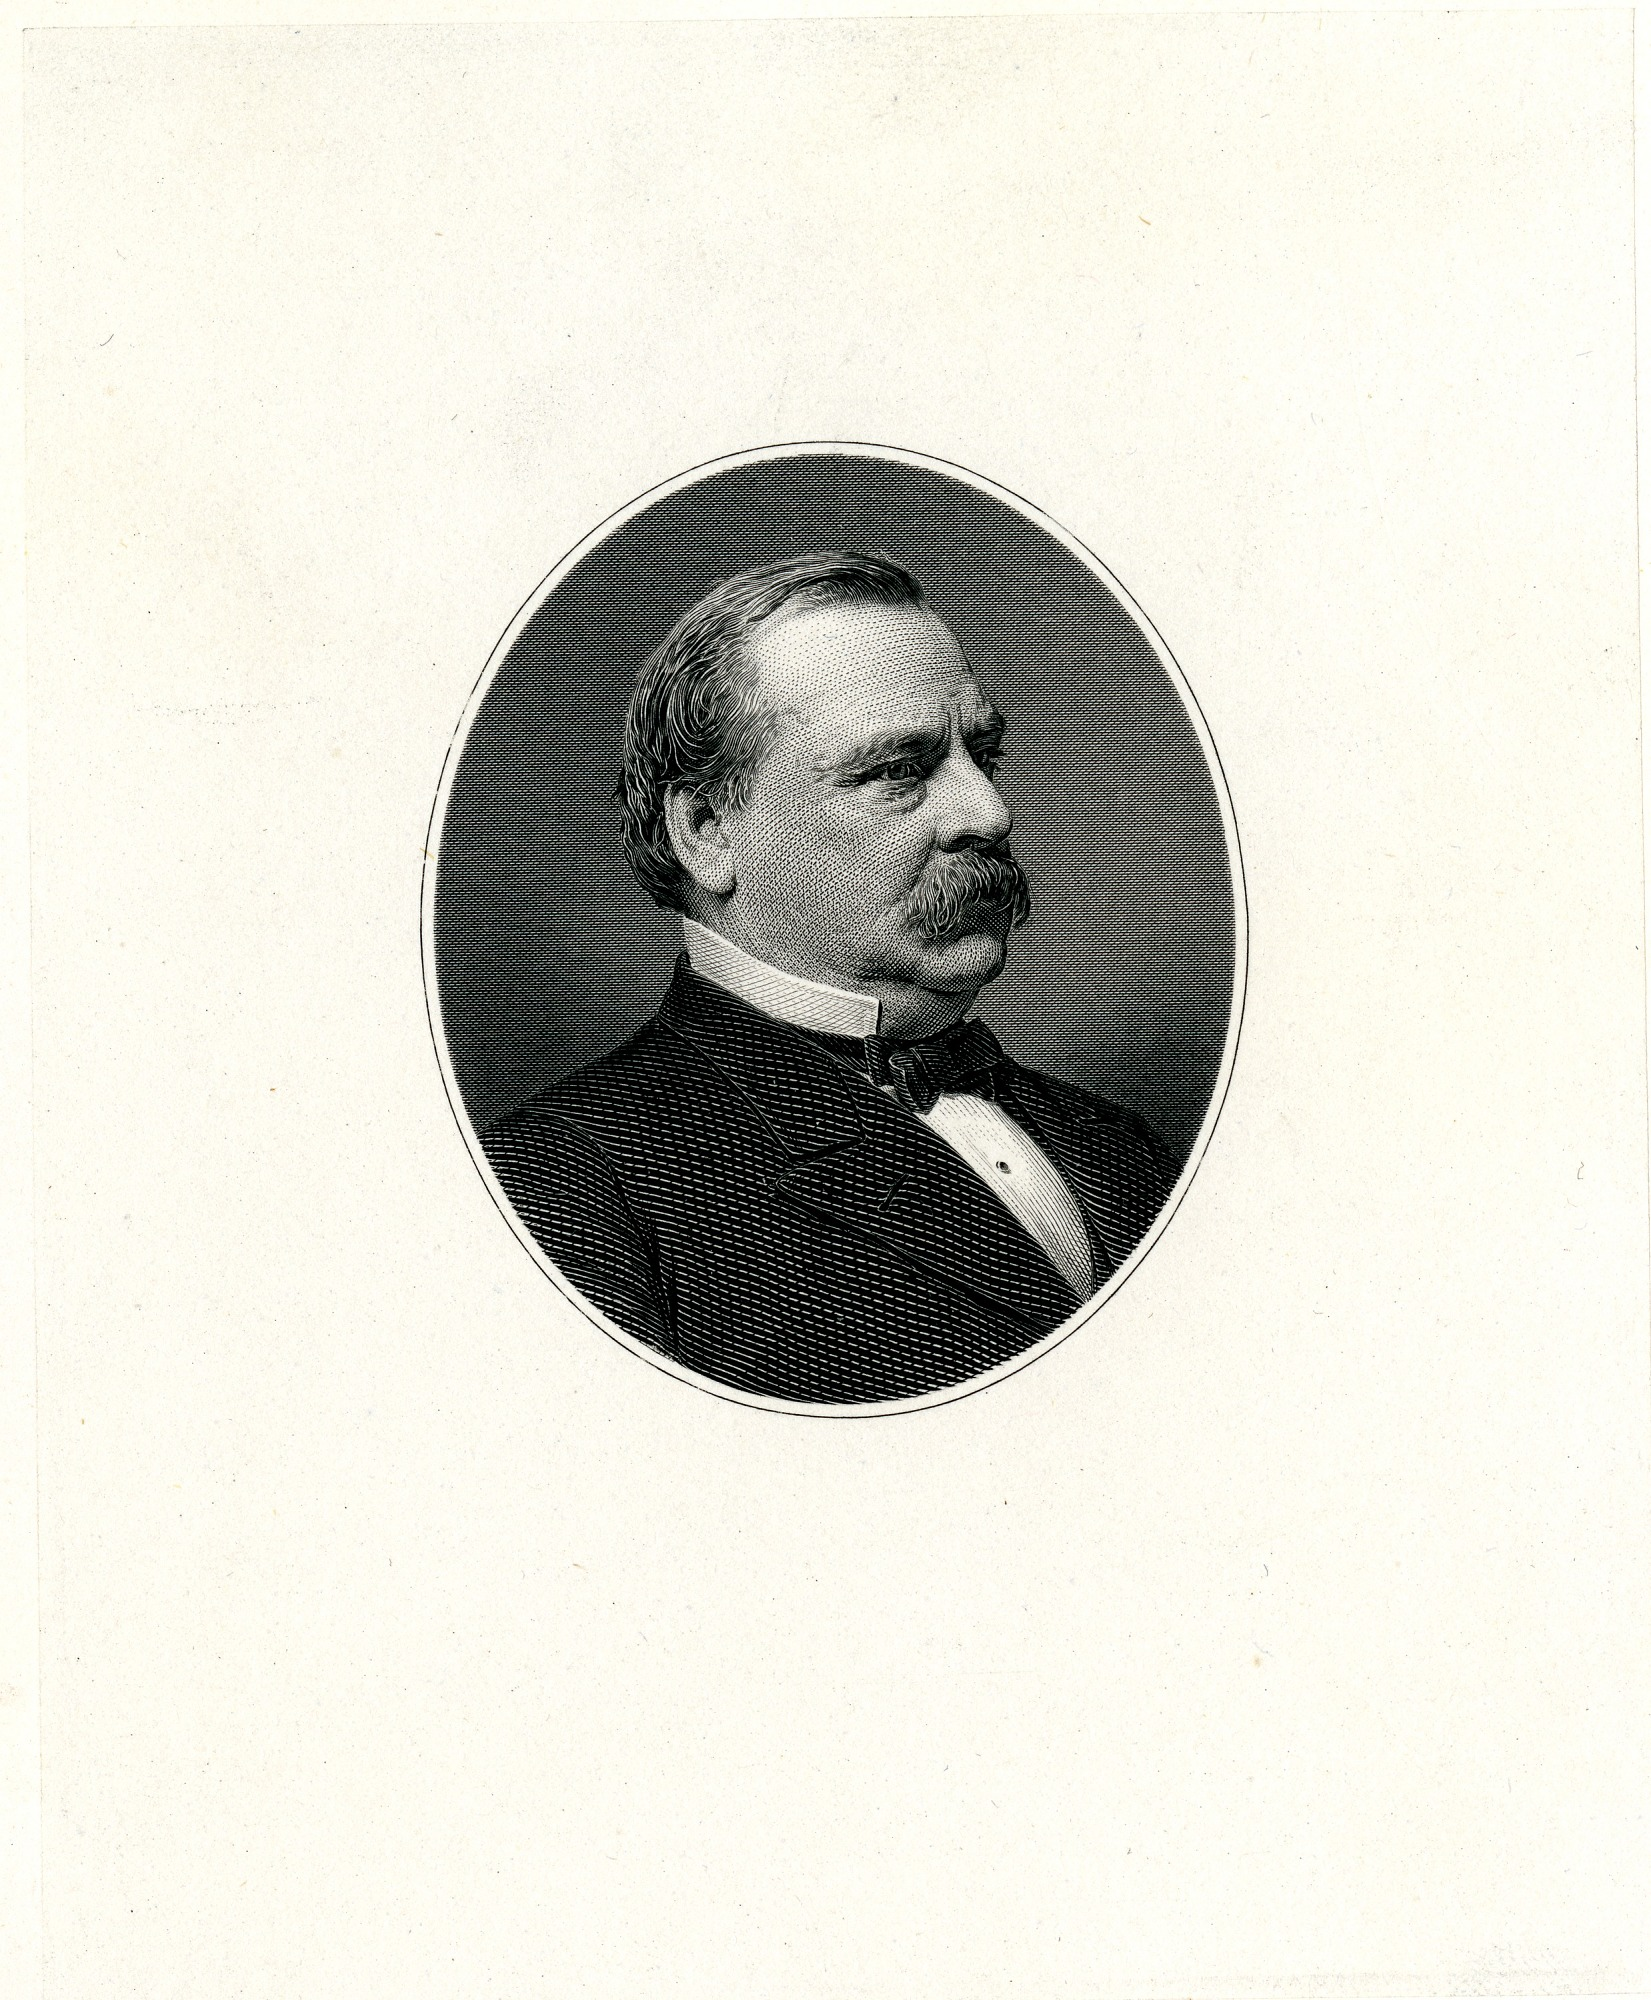 Jun 16 Grover Cleveland Engraving